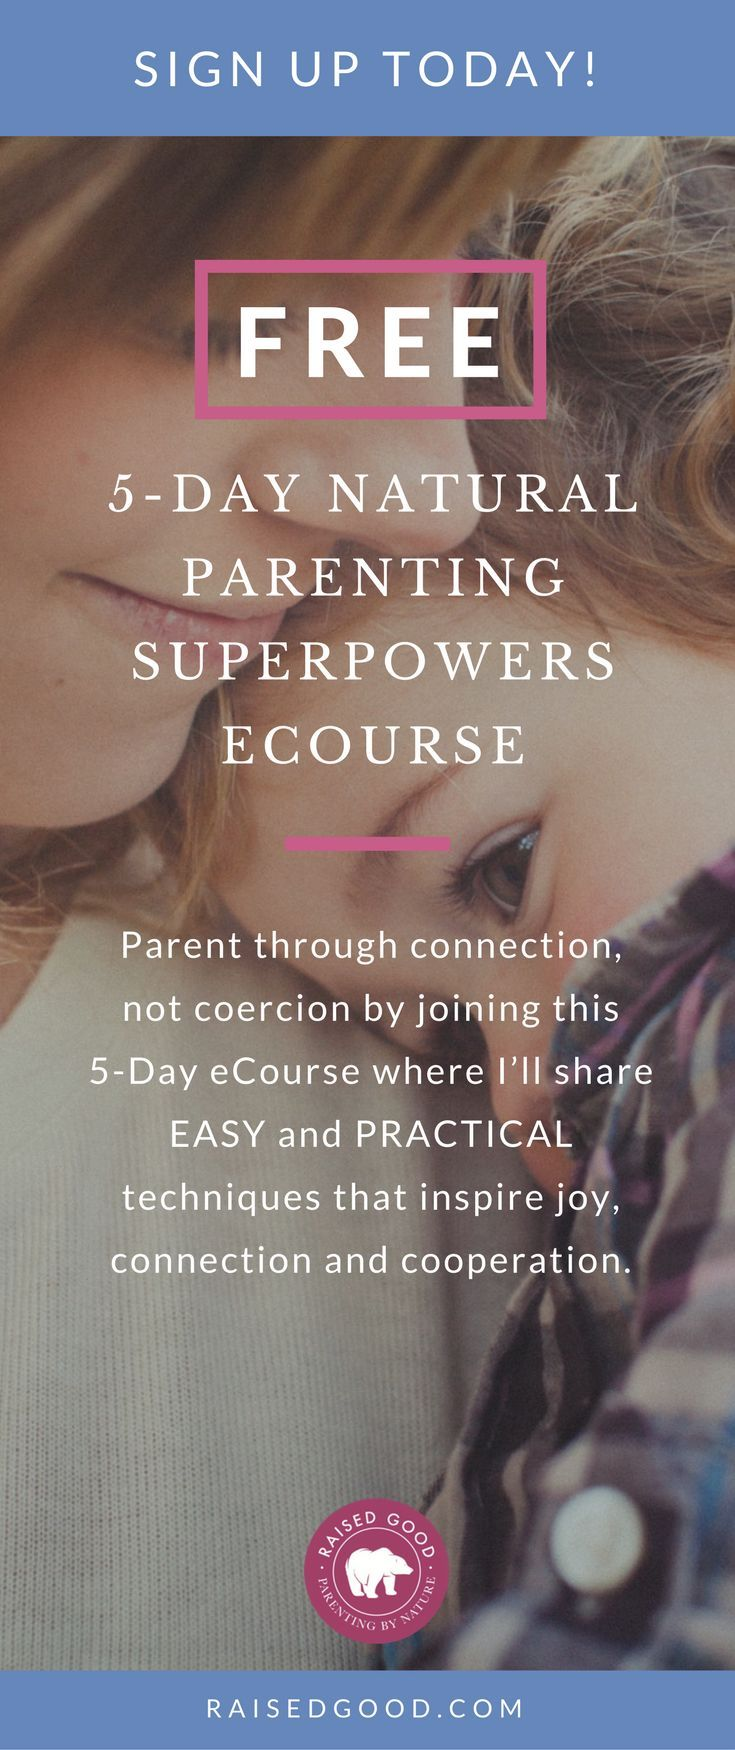 Join the FREE 5-day Natural Parenting Superpowers eCourse and learn practical tips for how to parent through connection, not coercion. You'll receive advice on positive parenting, discipline, parenting hacks, and strategies that work for girls, boys, teens, and toddlers. #parenting #parenthood #parentingtips #naturalparenting #parents #positiveparenting